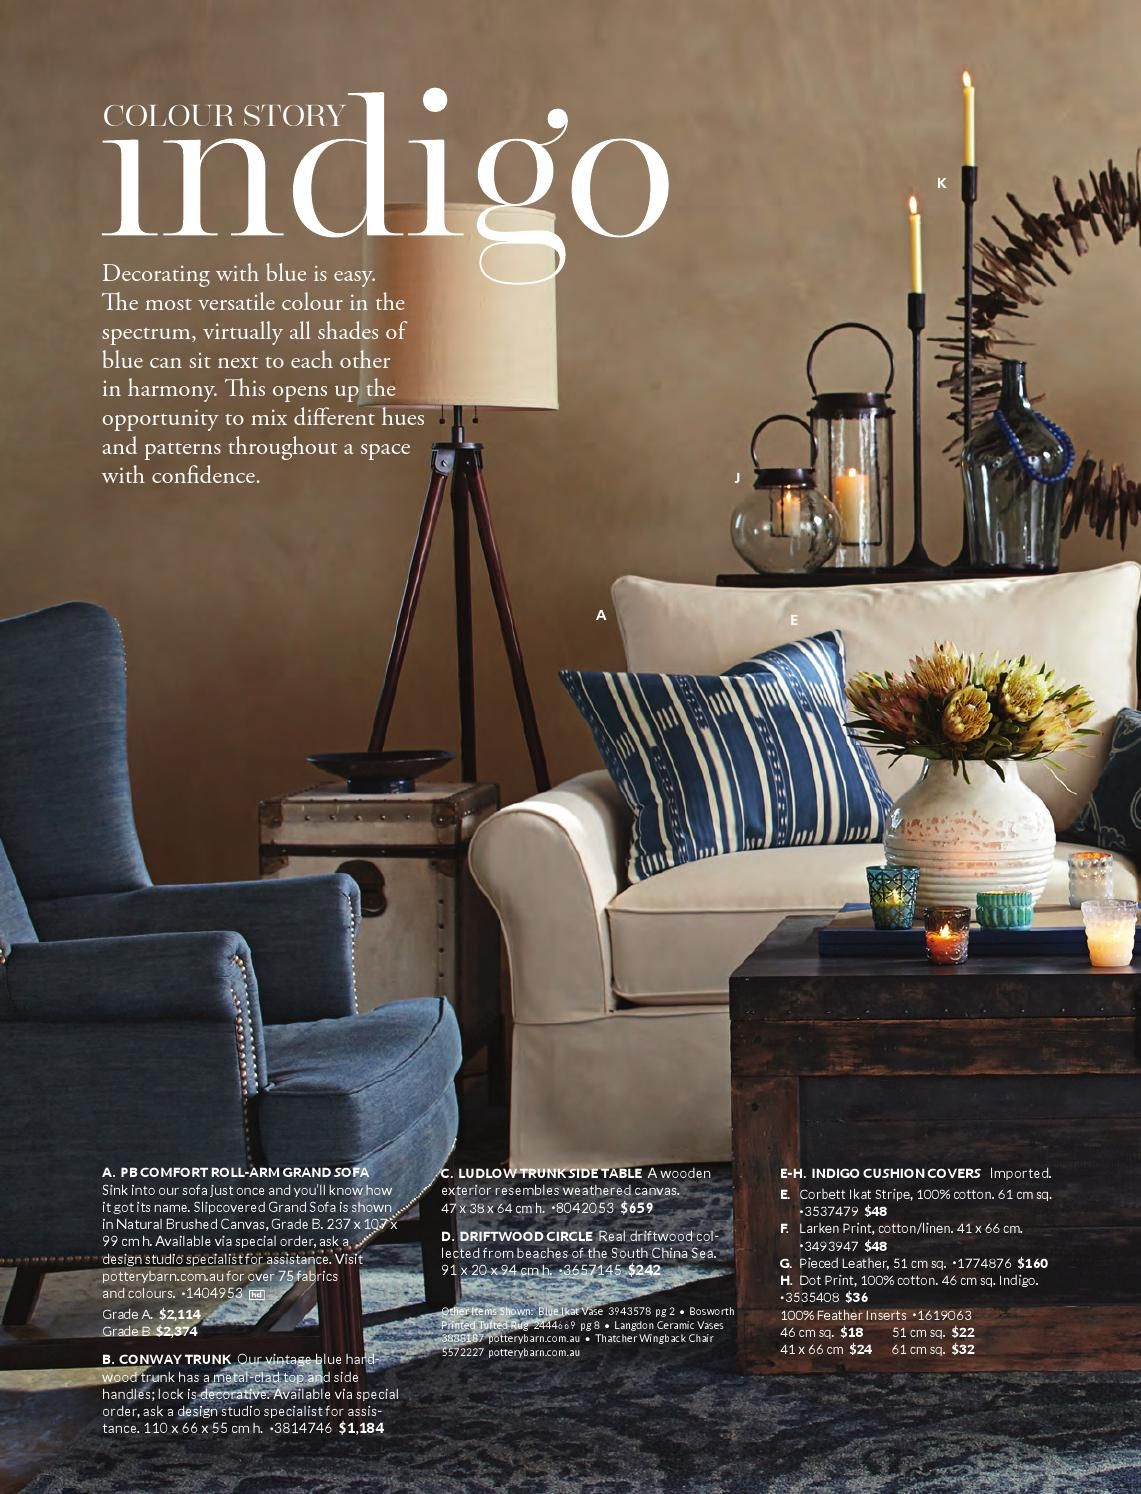 Rpblrm50 Ideas Here Remarkable Pottery Barn Living Room Misc Collection 6597